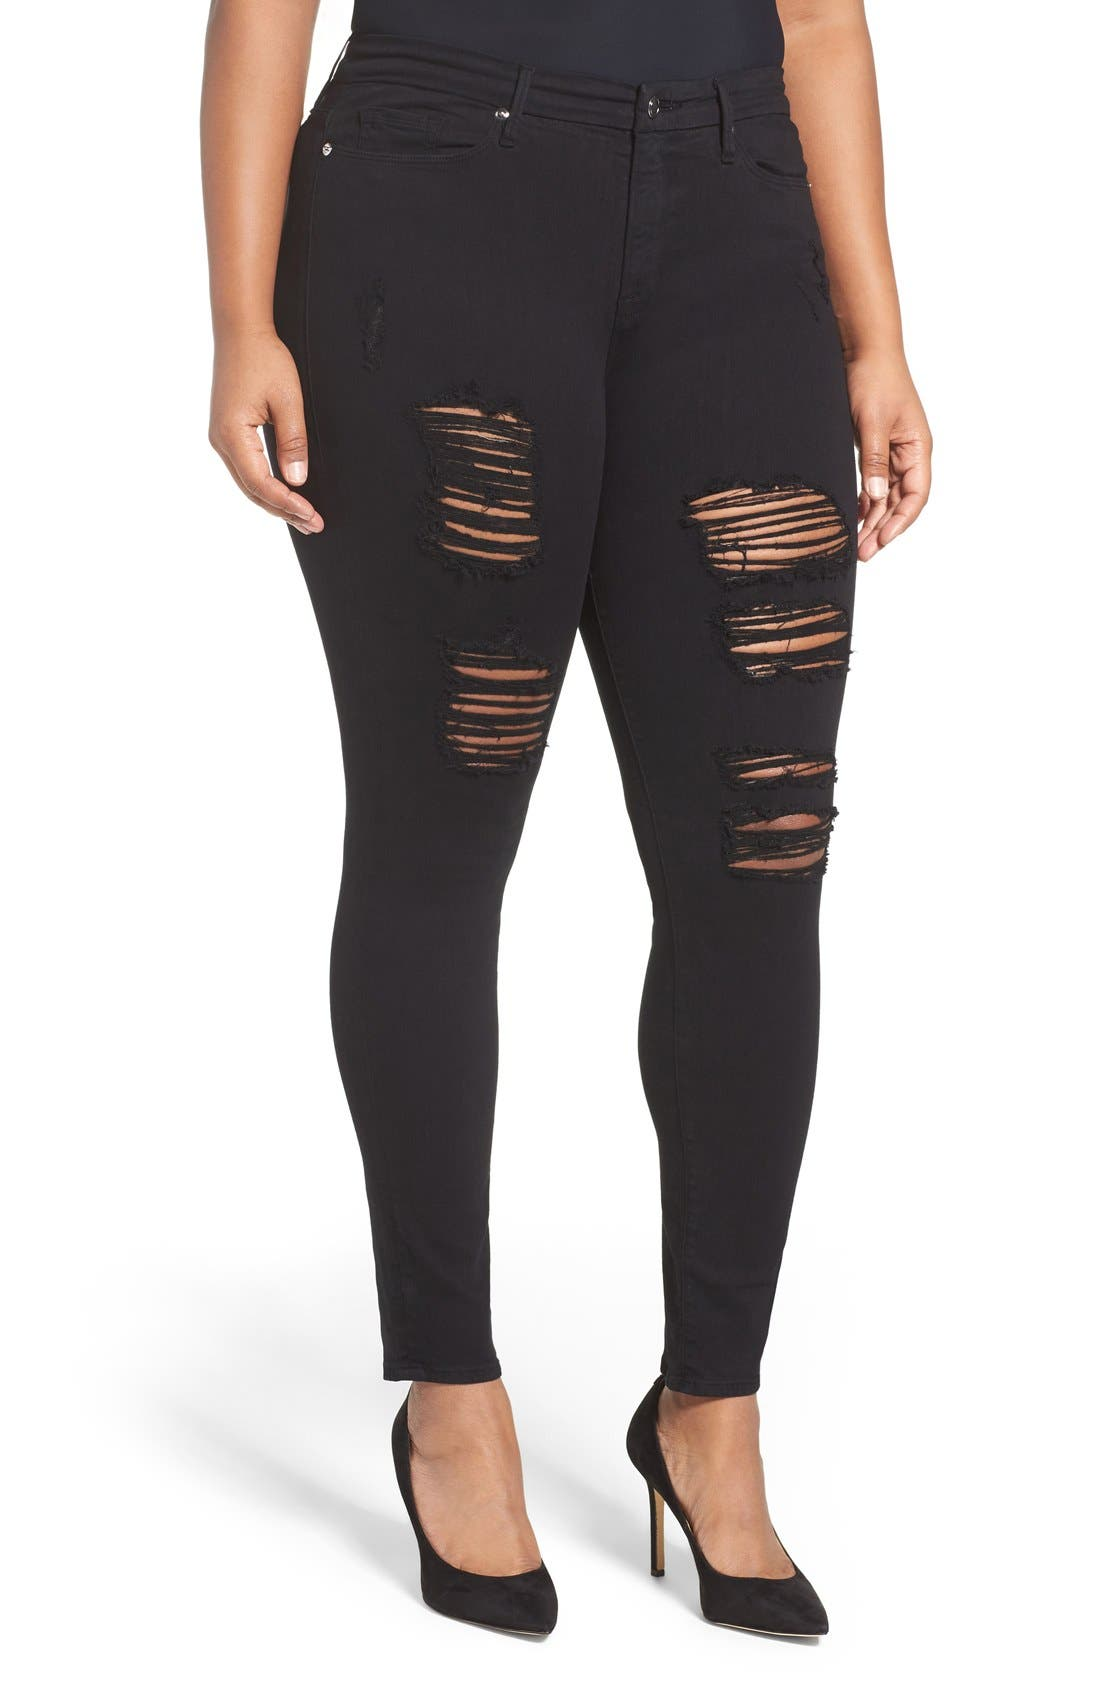 Alternate Image 1 Selected - Good American Good Legs High Rise Ripped Skinny Jeans